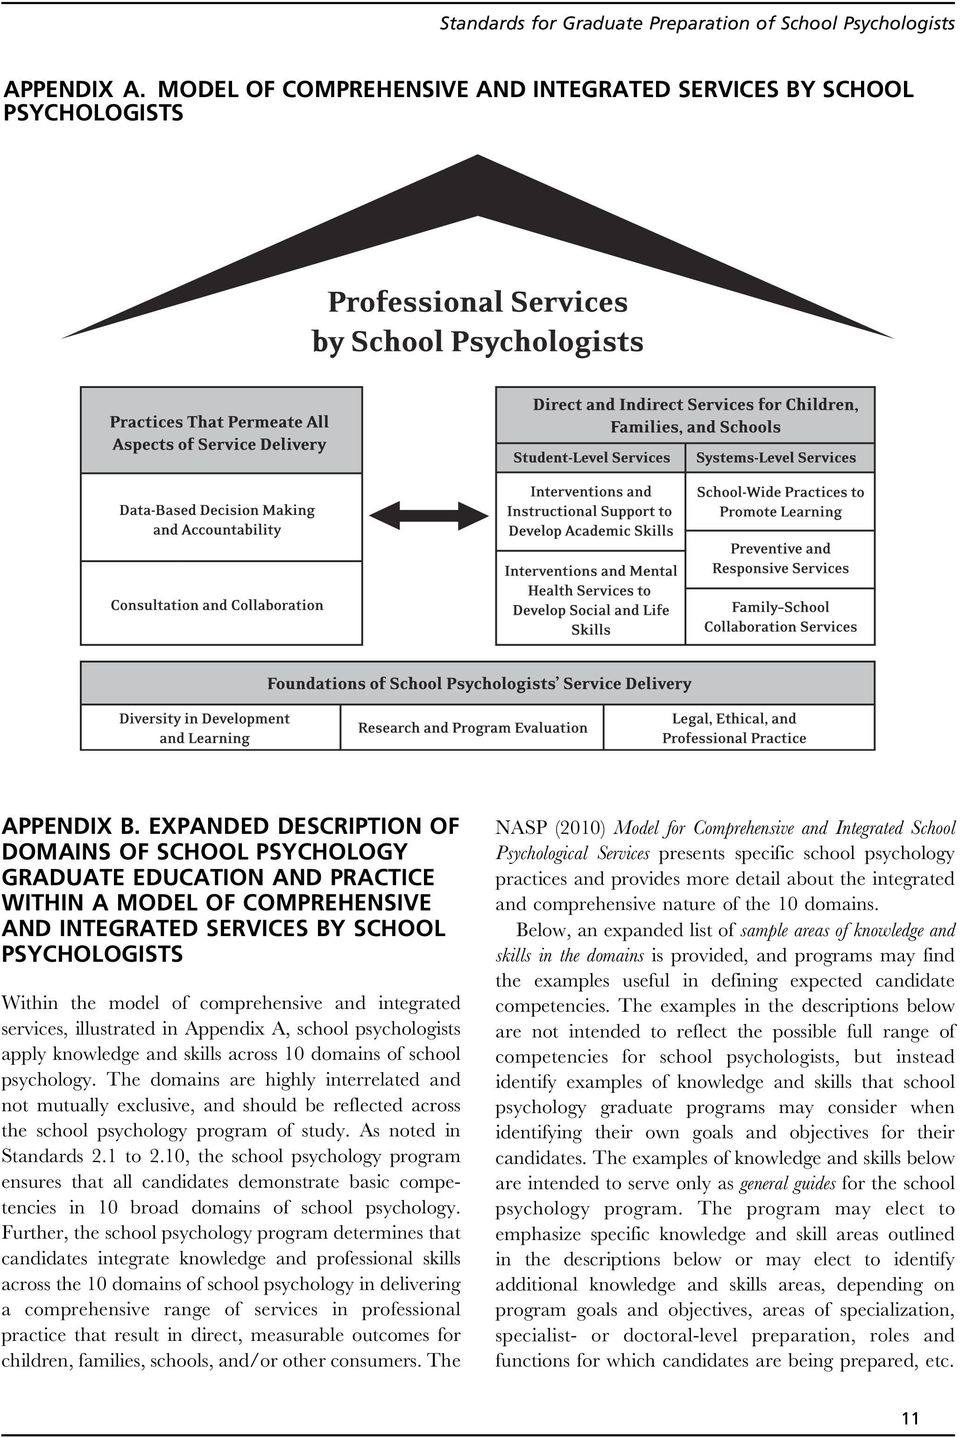 and integrated services, illustrated in Appendix A, school psychologists apply knowledge and skills across 10 domains of school psychology.